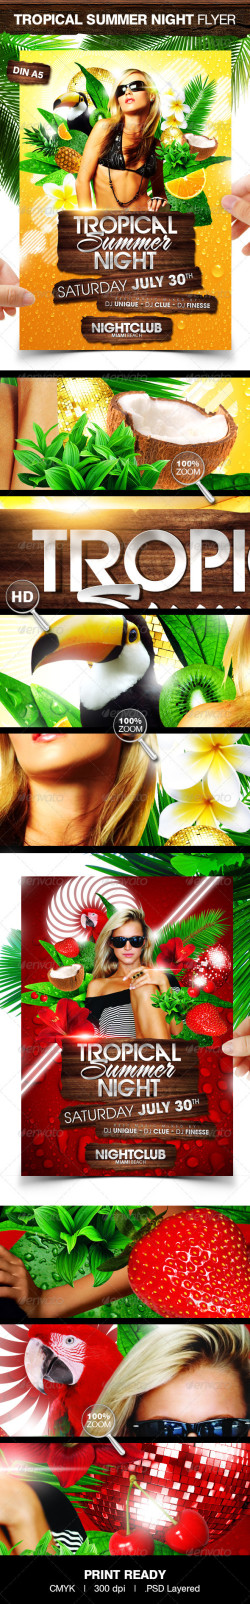 Tropical Summer Night Party Flyer Template preview big